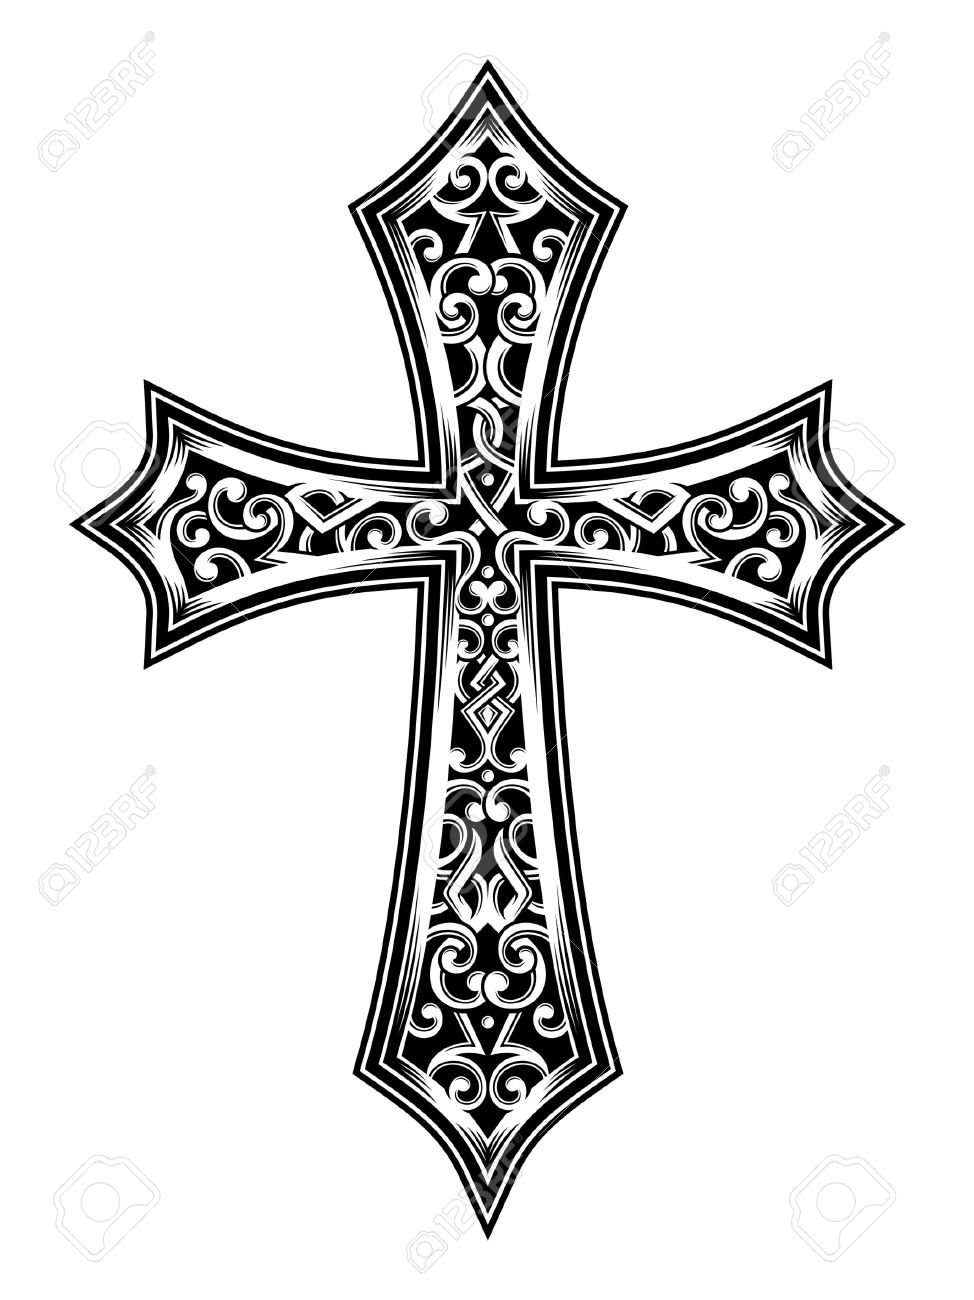 Vector illustration of carved cross image suitable for printing vector illustration of carved cross image suitable for printing on a t shirt biocorpaavc Gallery